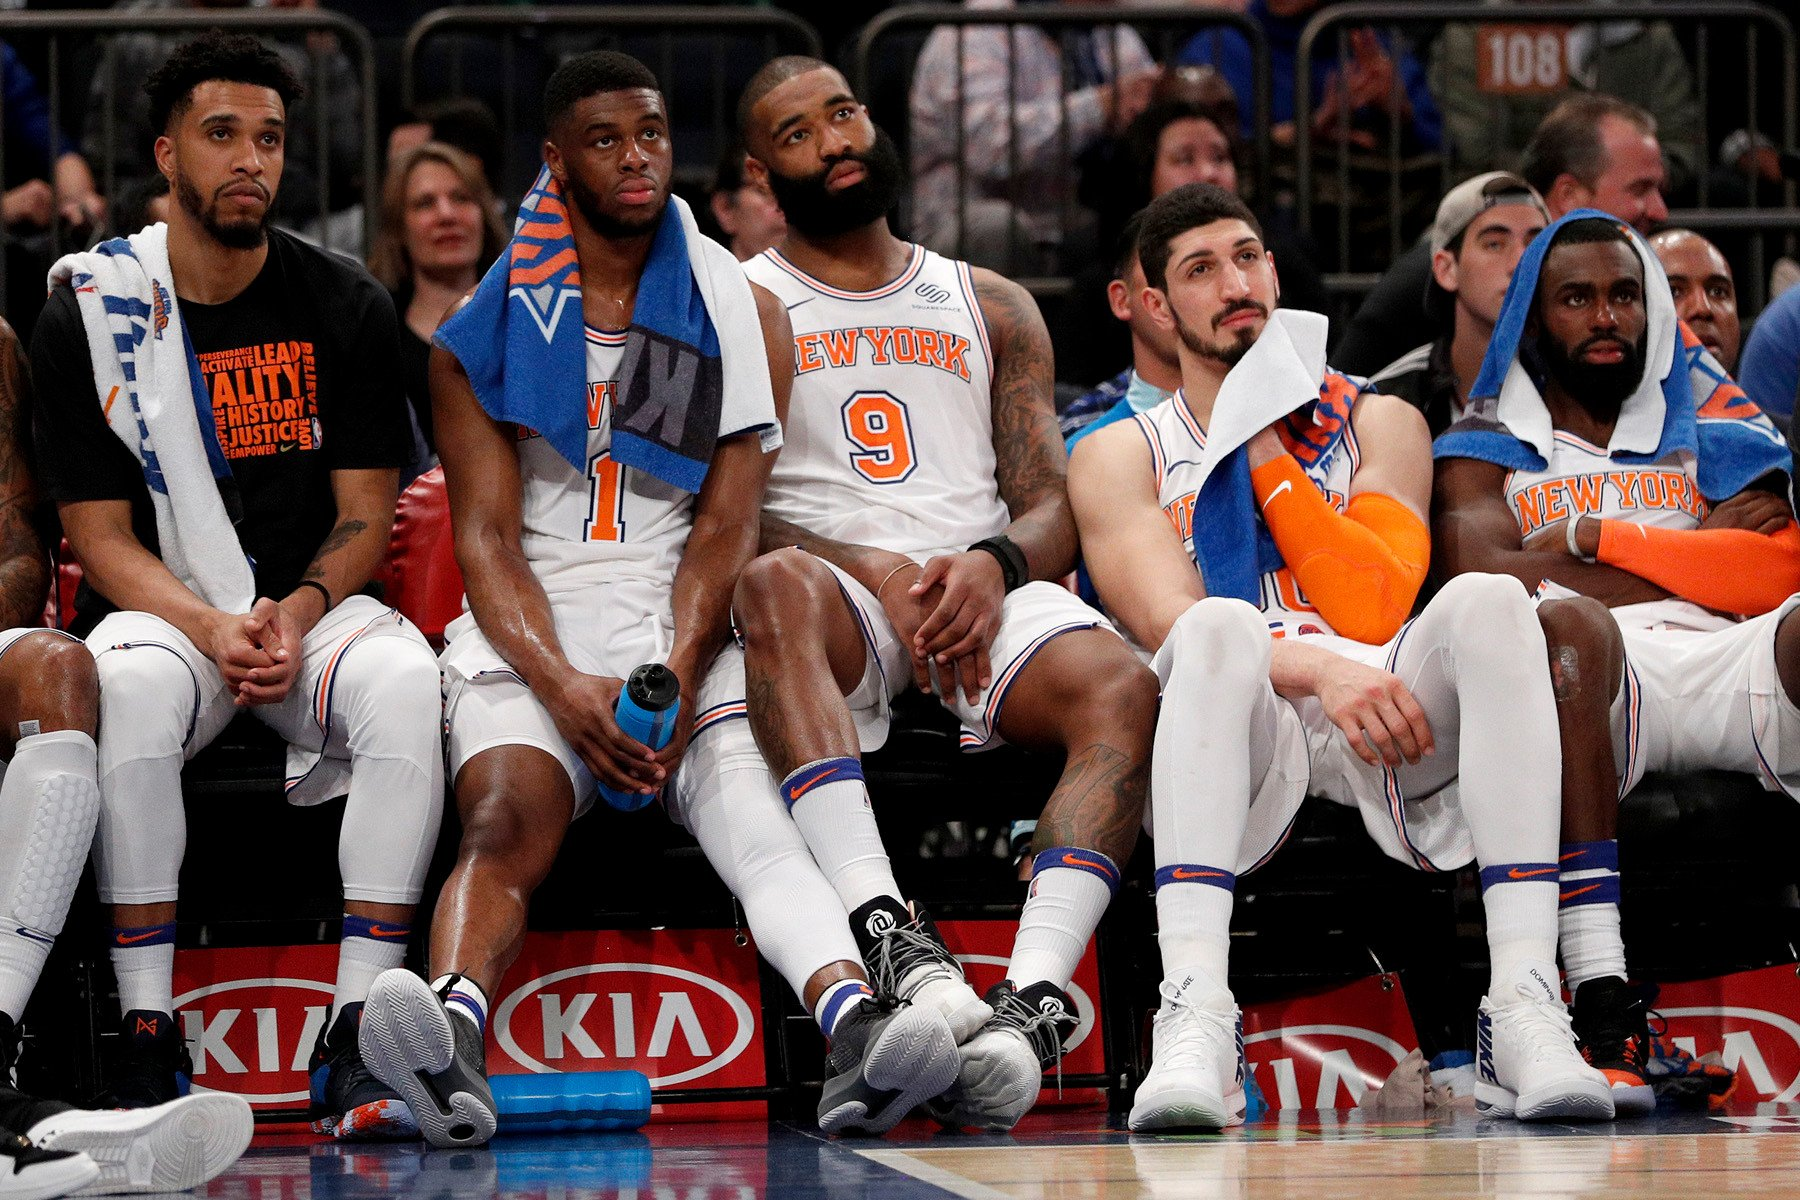 Knicks put in one good half against dominant Warriors